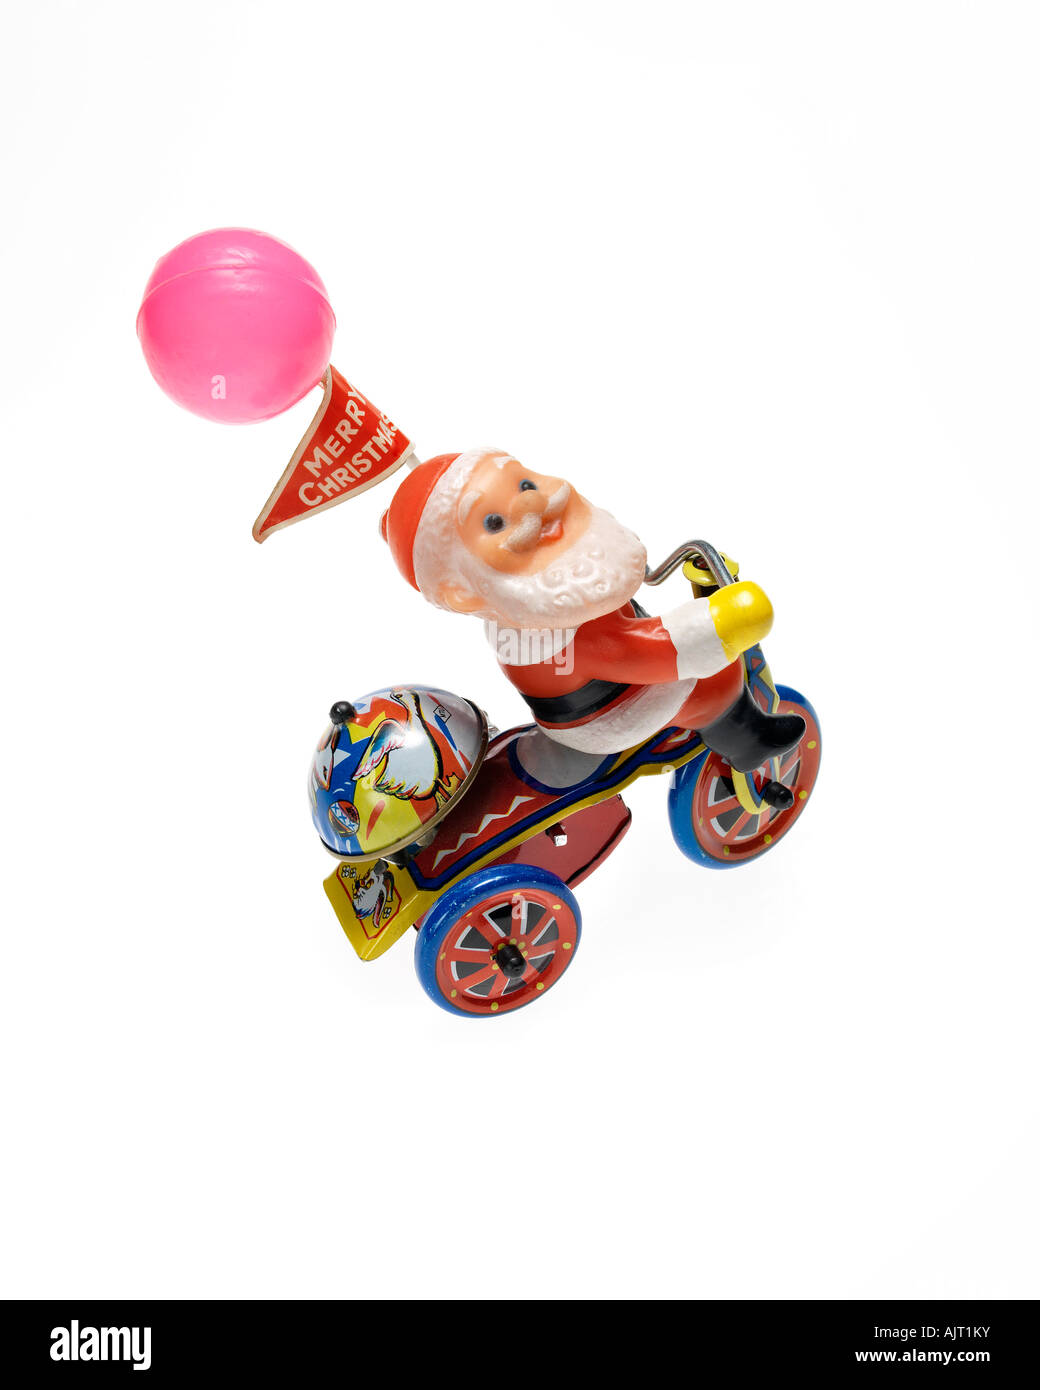 Santa Claus on tricycle - Stock Image